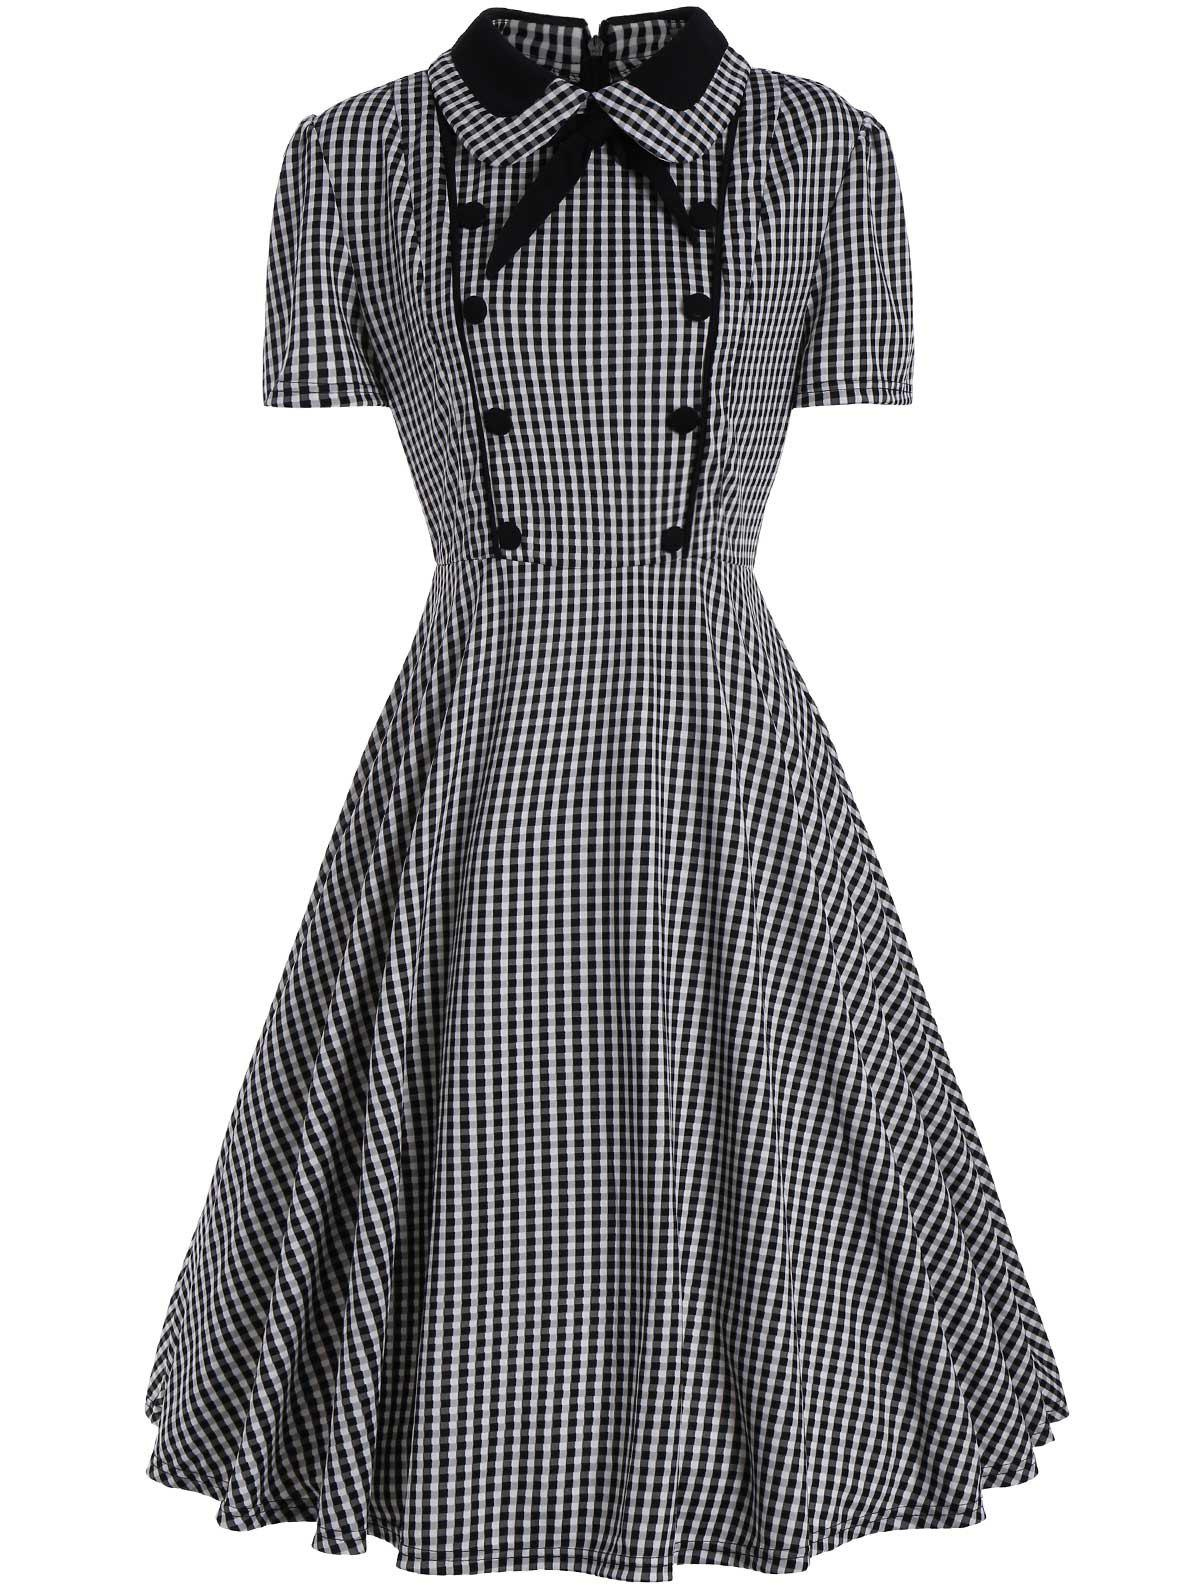 Plus Size A Line Plaid Midi DressWOMEN<br><br>Size: 3XL; Color: BLACK; Style: Vintage; Material: Polyester; Silhouette: A-Line; Dresses Length: Mid-Calf; Neckline: Turn-down Collar; Sleeve Length: Short Sleeves; Pattern Type: Plaid; With Belt: No; Season: Summer; Weight: 0.5000kg; Package Contents: 1 x Dress;